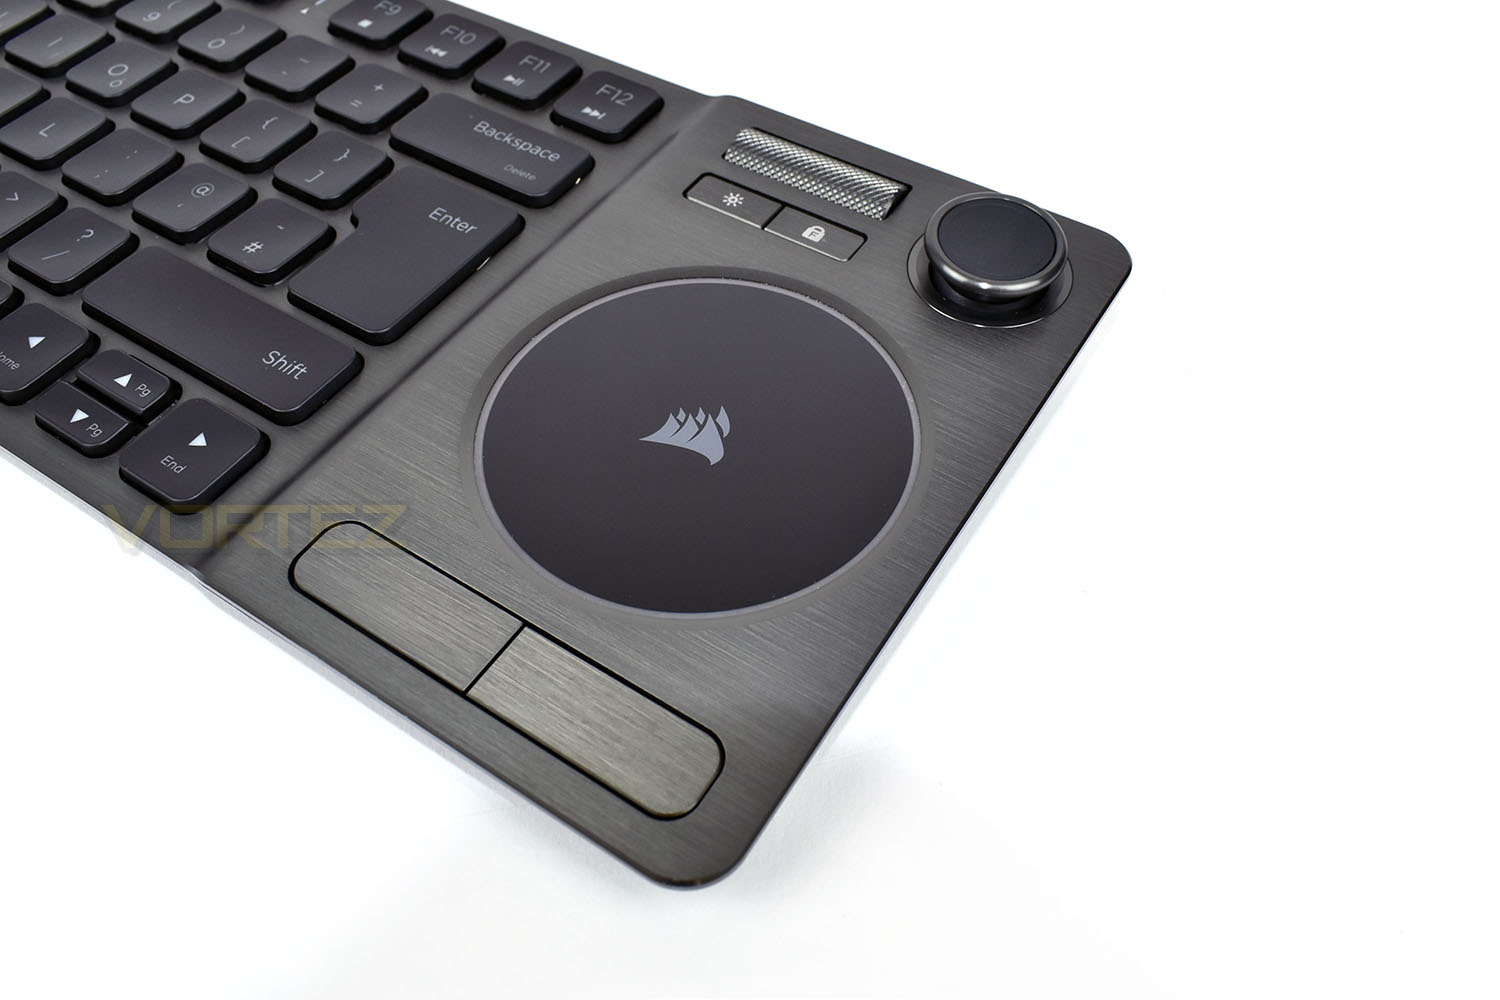 corsair_k83_wireless_trackpad.jpg